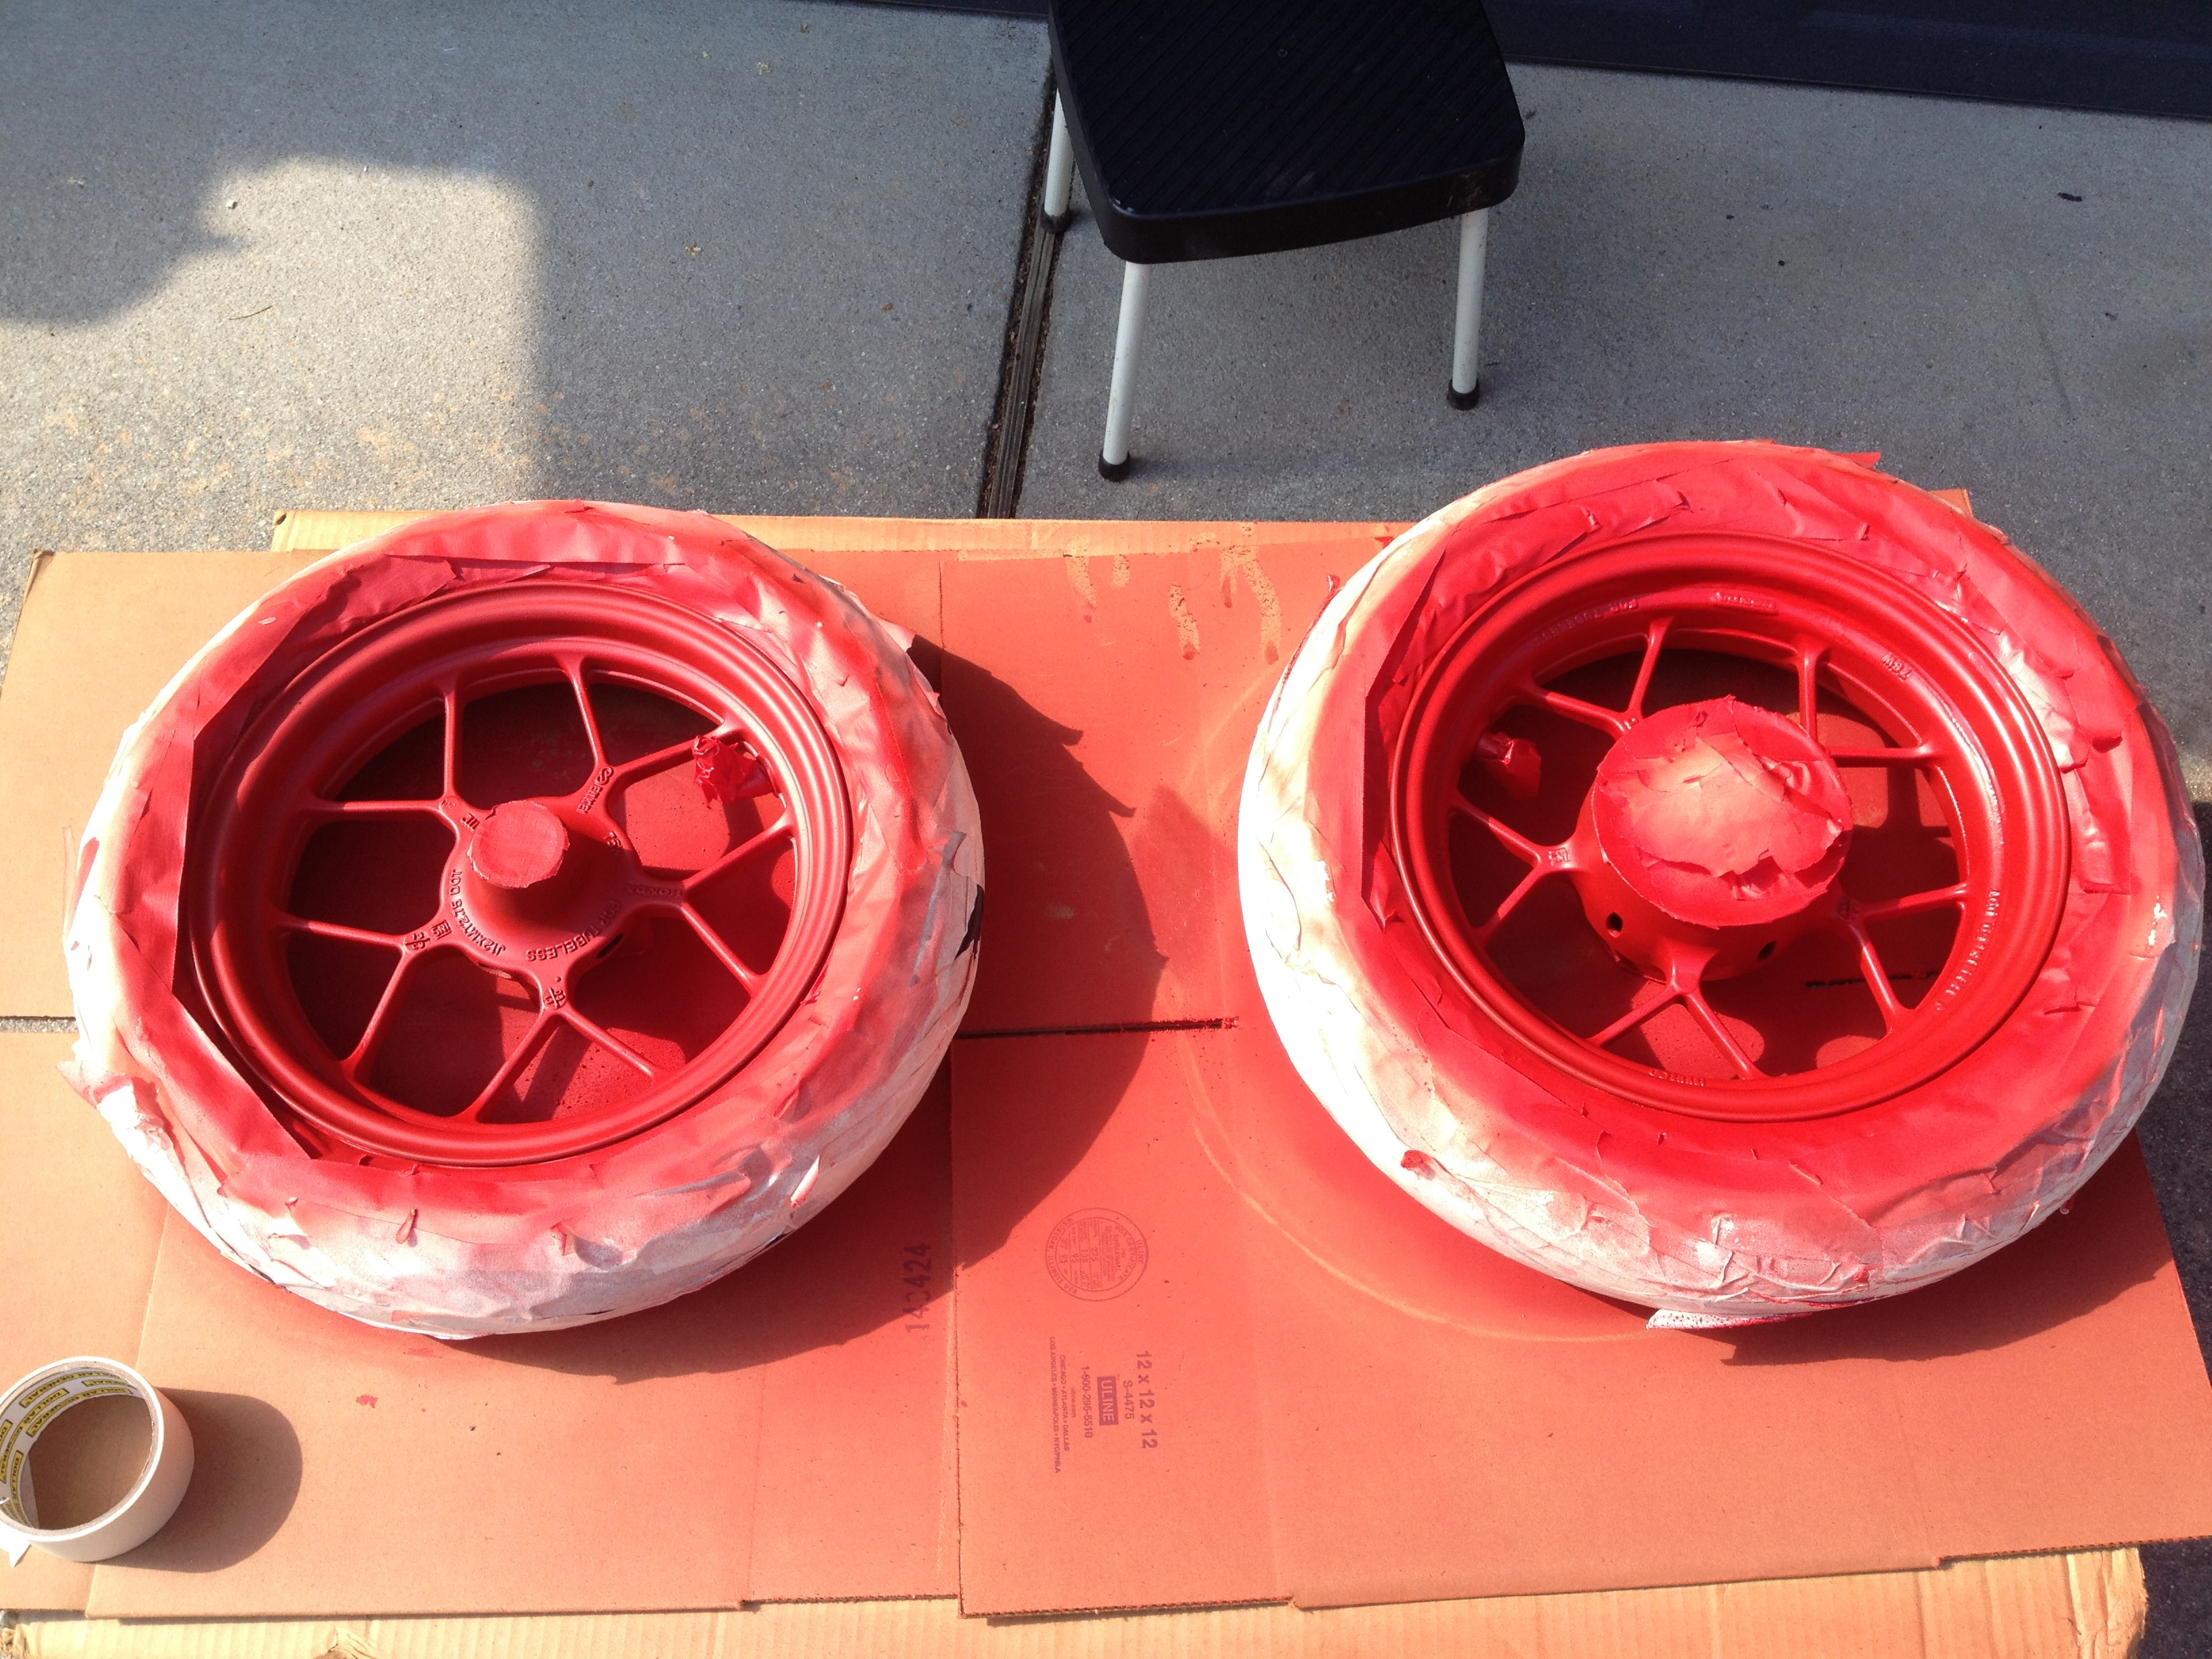 Got New Rubber Pirelli Gts 23 And Gts 24 And Red